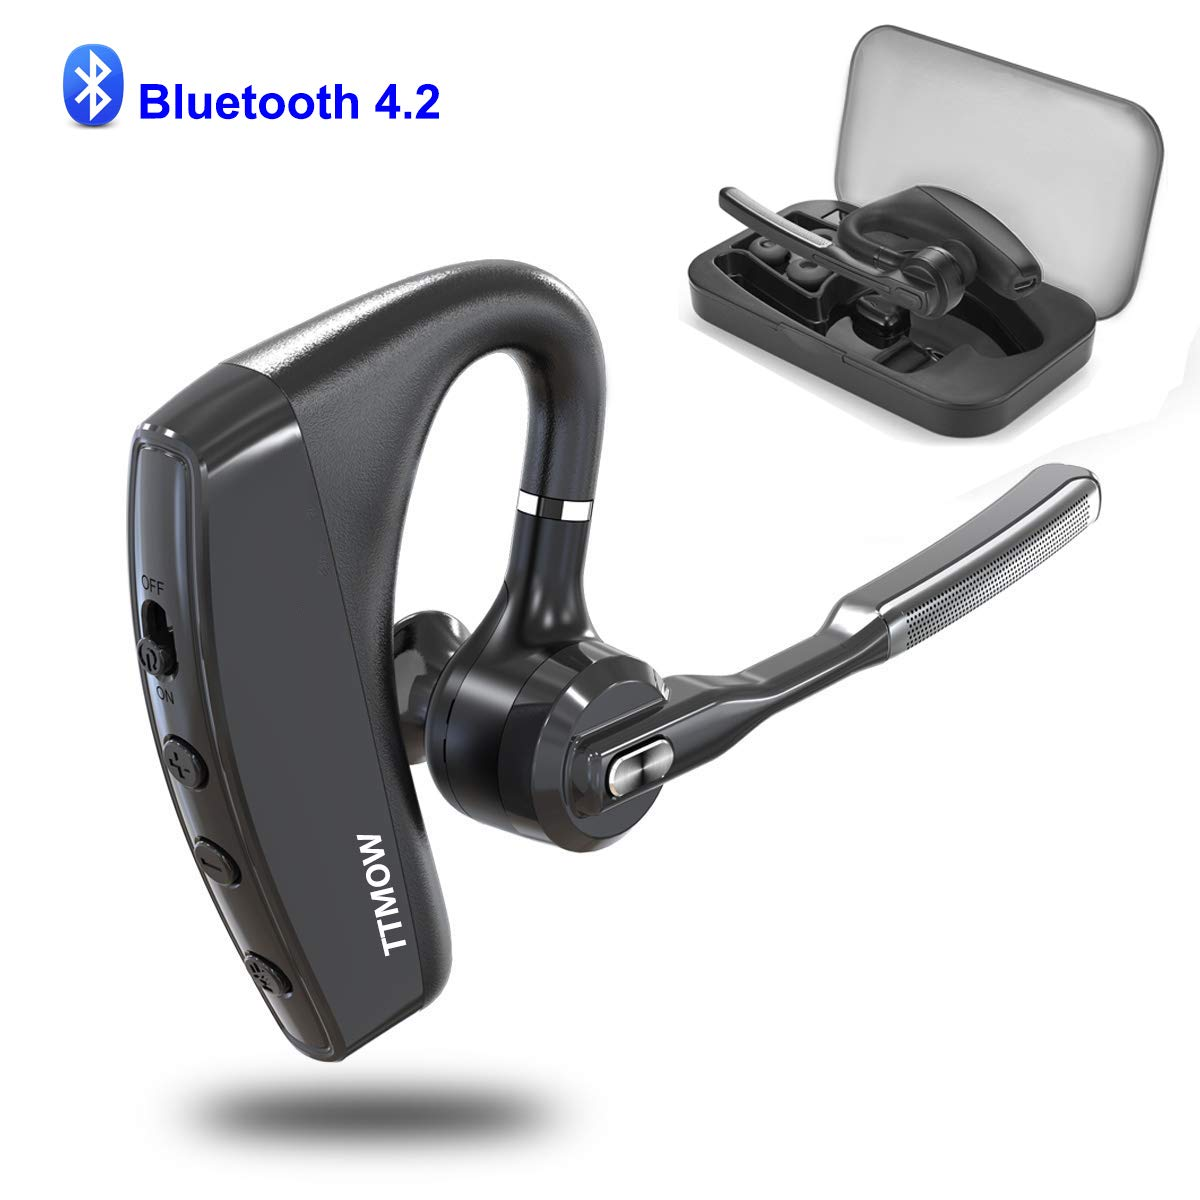 TTMOW Bluetooth Headsets V4.2 Hands Free Wireless Earpiece with Dual Mic Active Noise Cancelling Single Ear Bluetooth Cell Phones Earphone for Driving/Business/Office(Compatible for iOS Android) by TTMOW